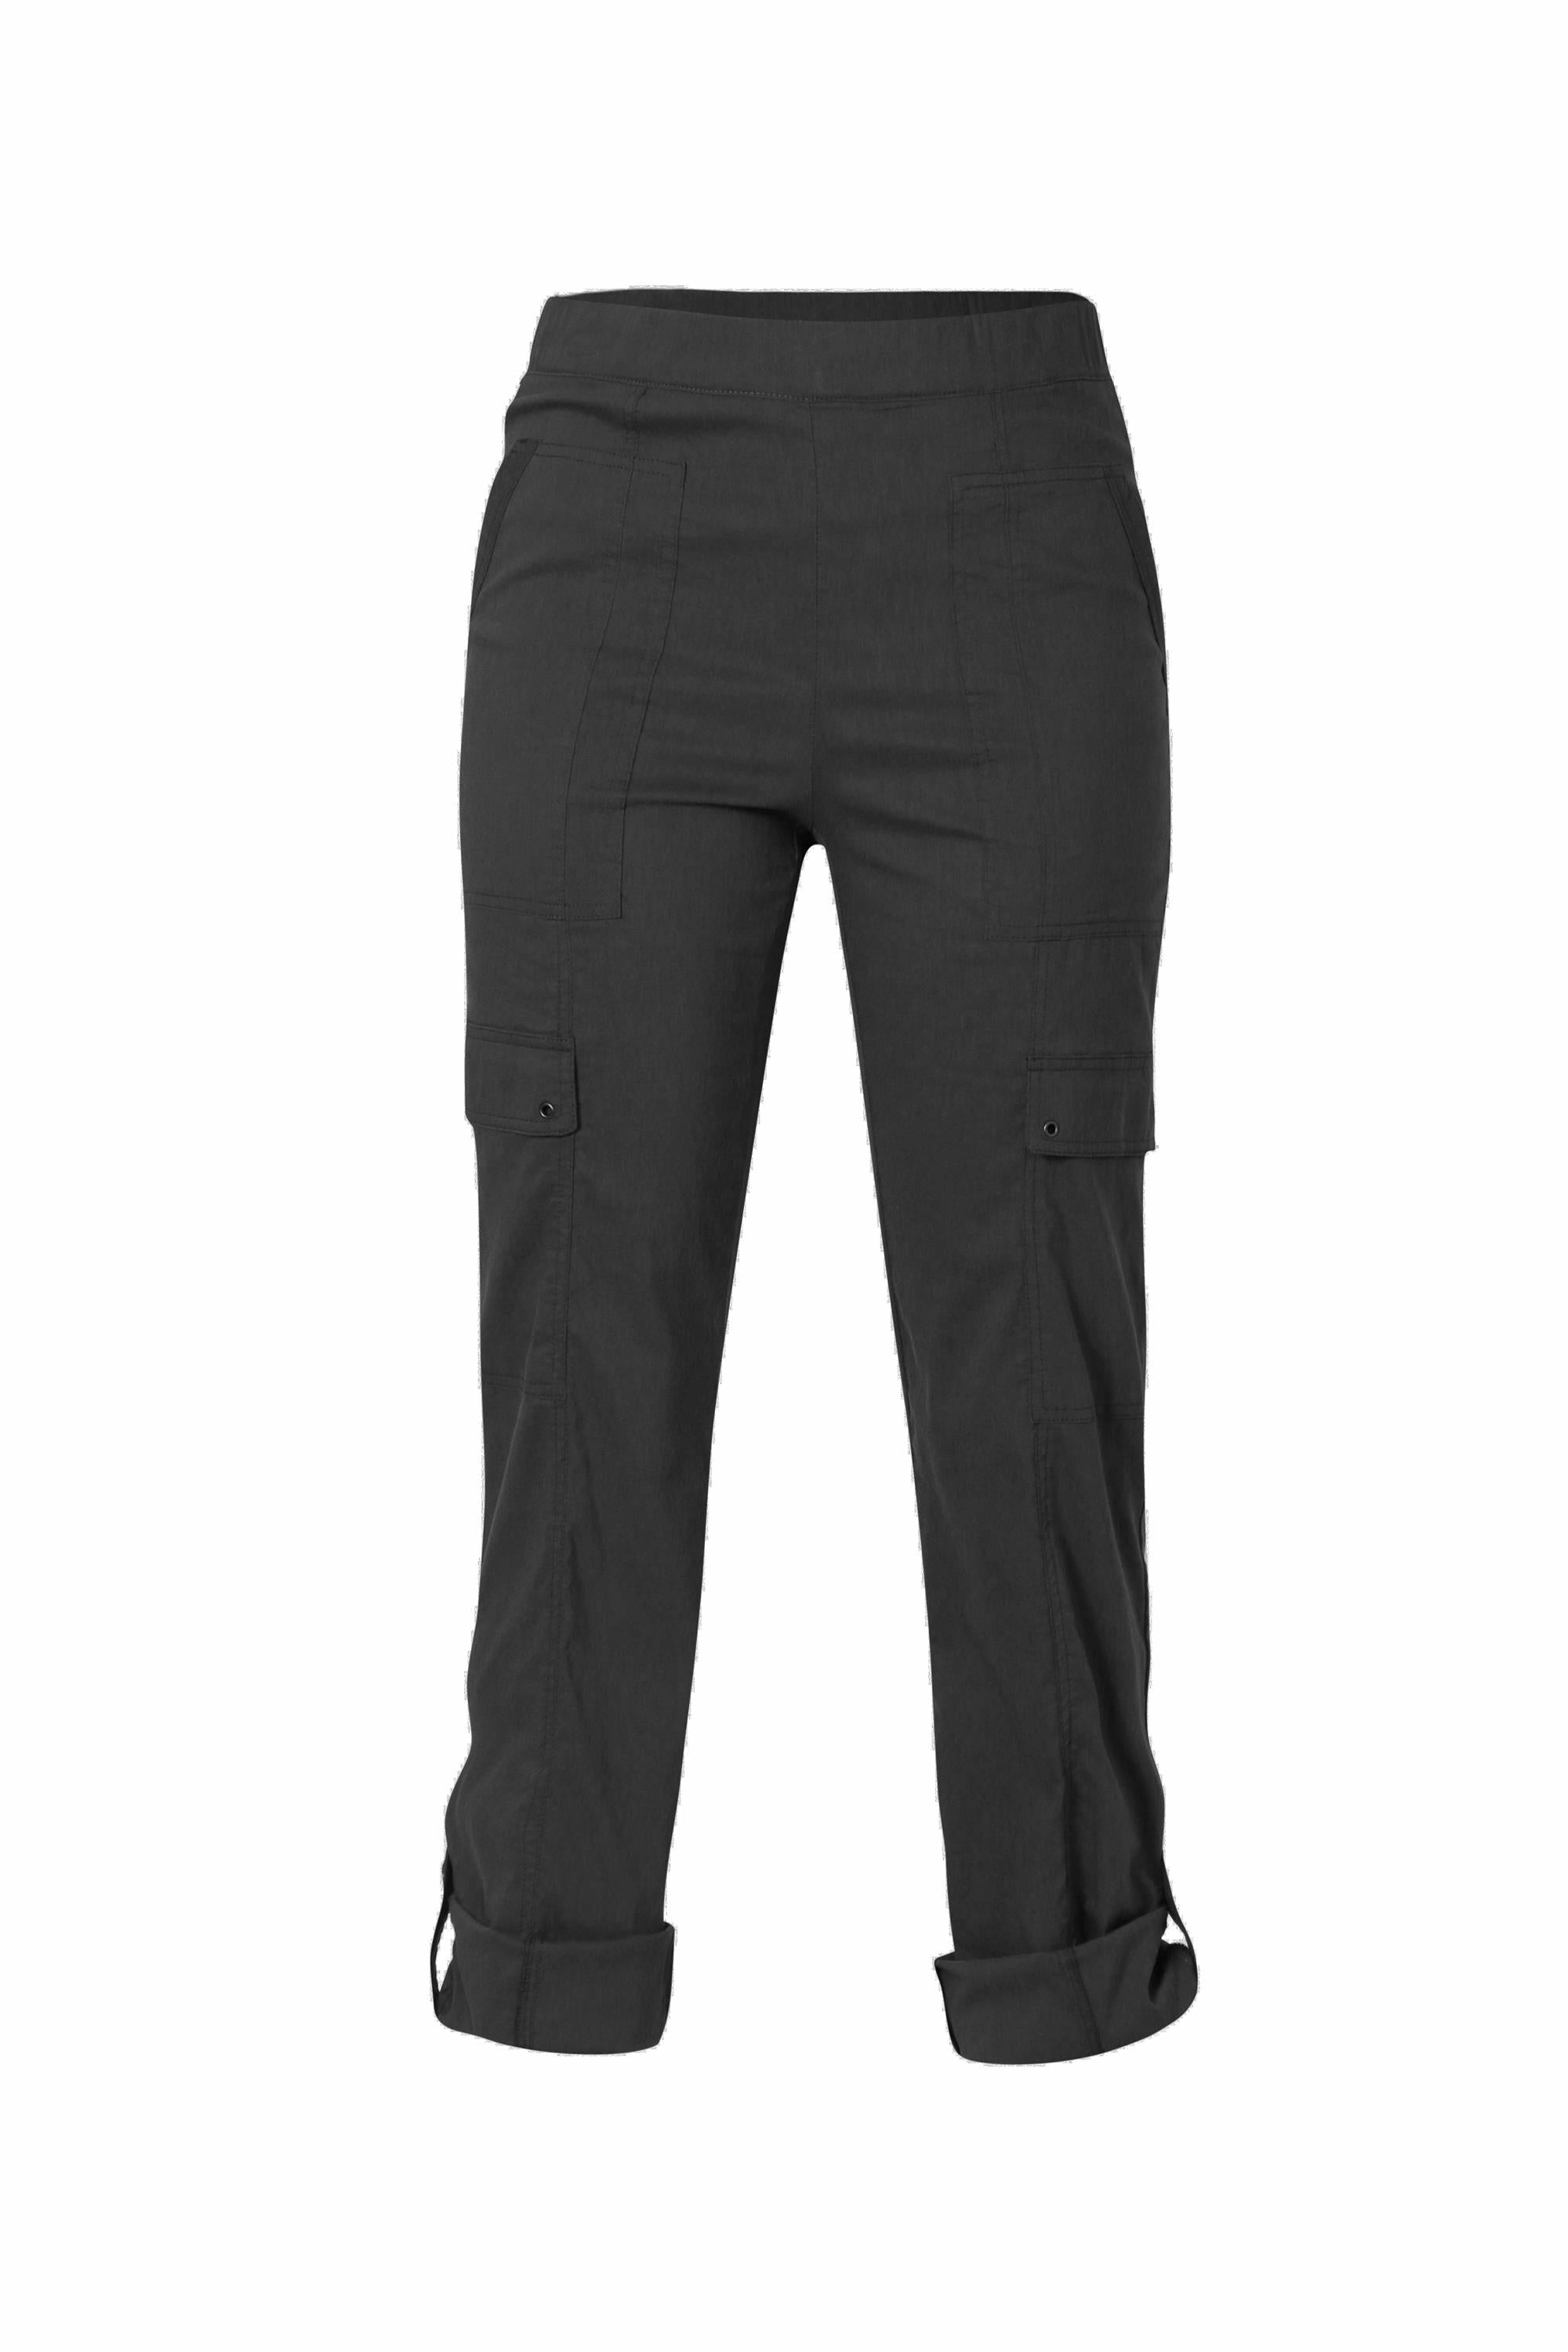 Verge Essentials Acrobat Cargo Pant - Black